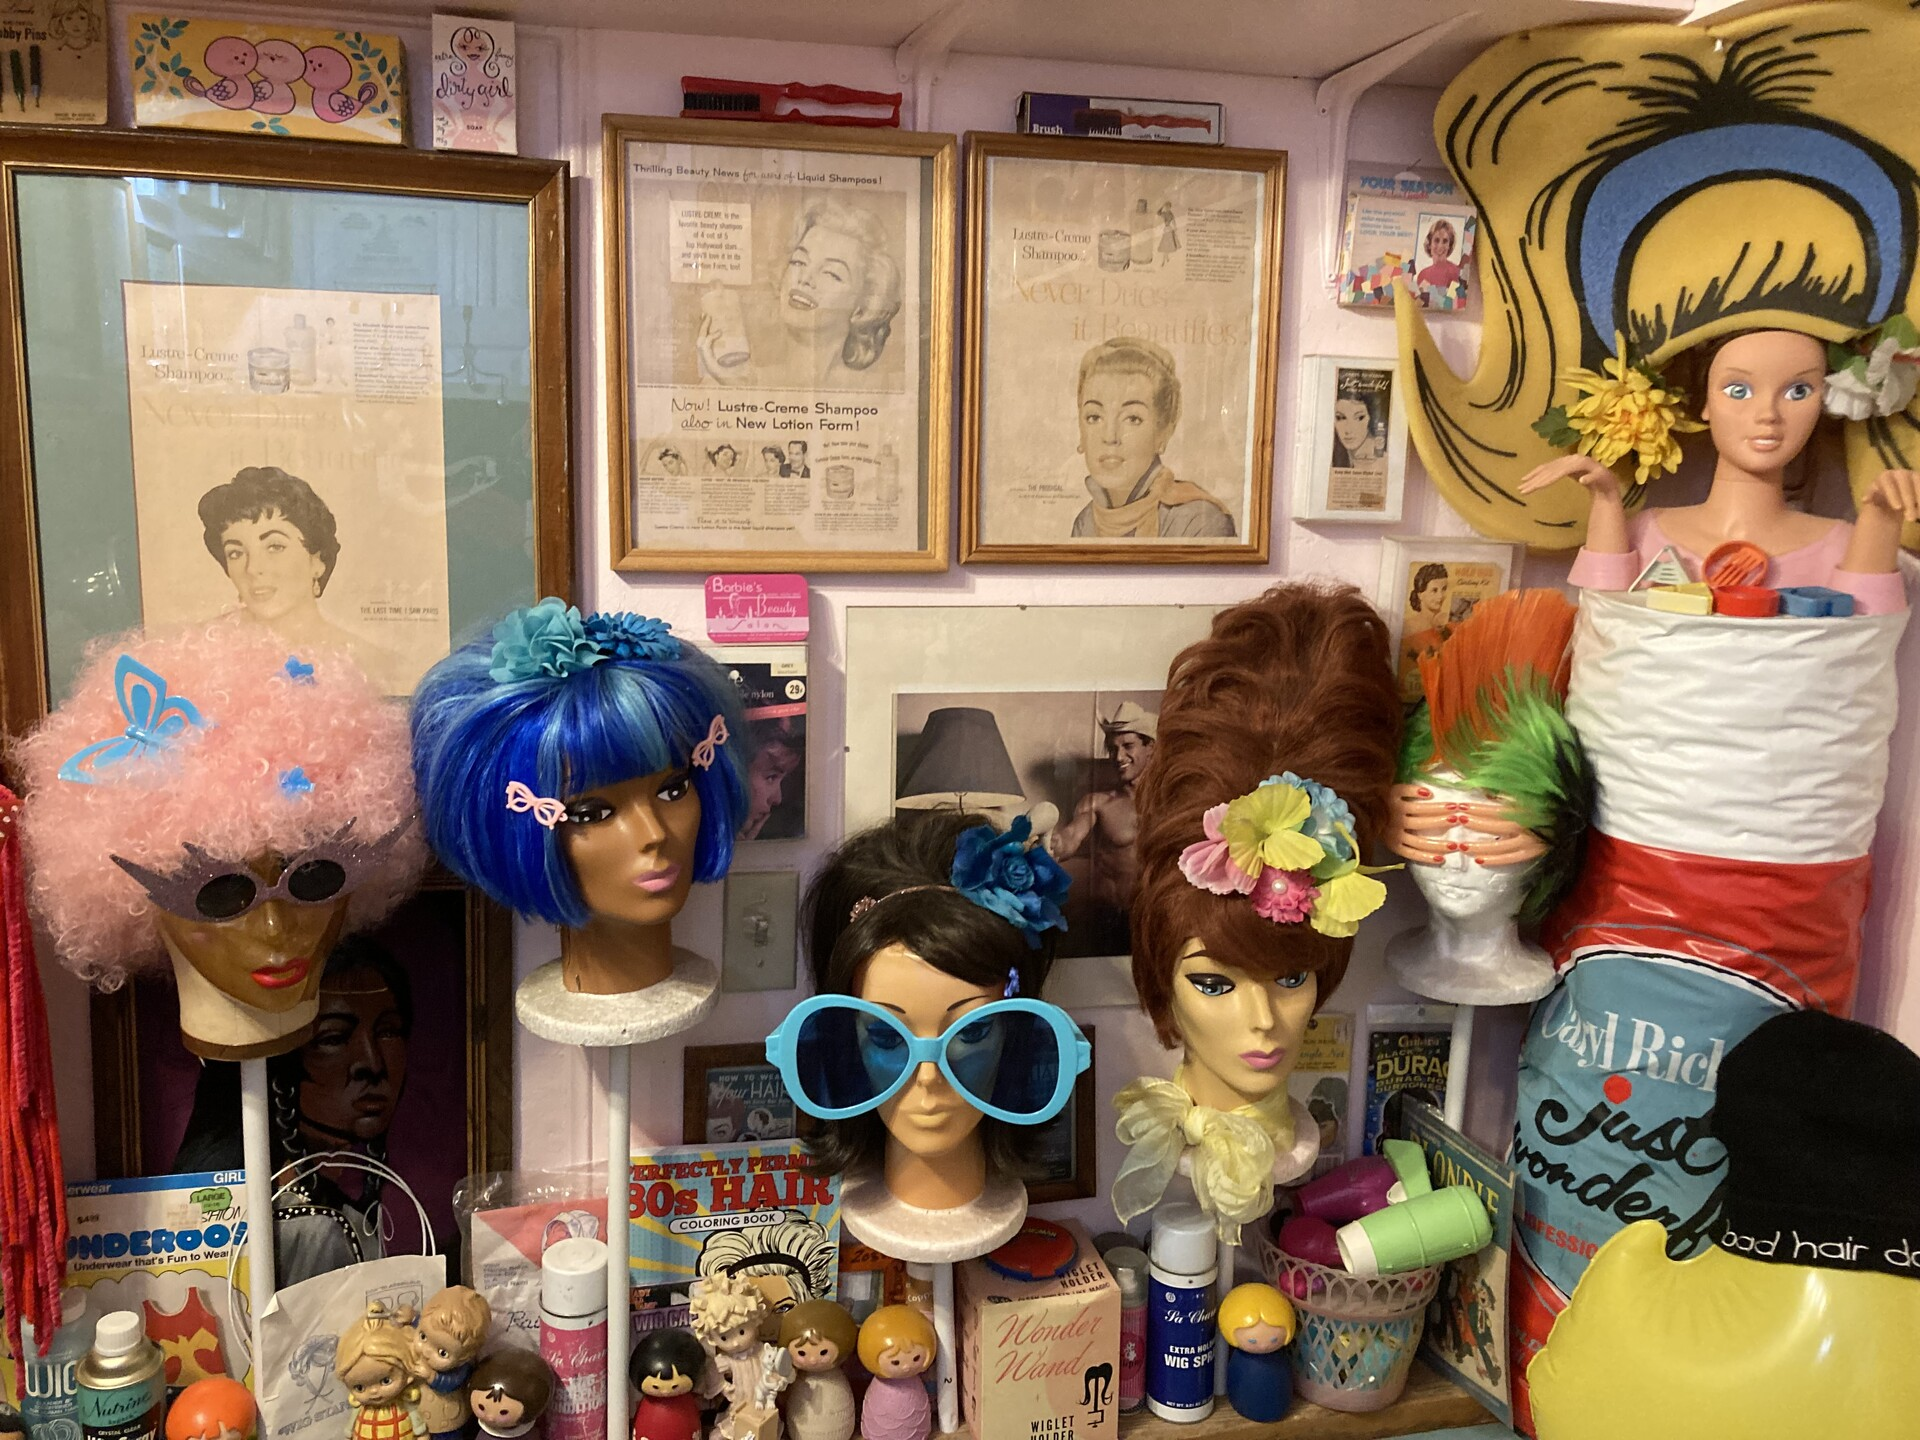 Multi-colored wigs adorn mannequin heads with vintage posters in the background.